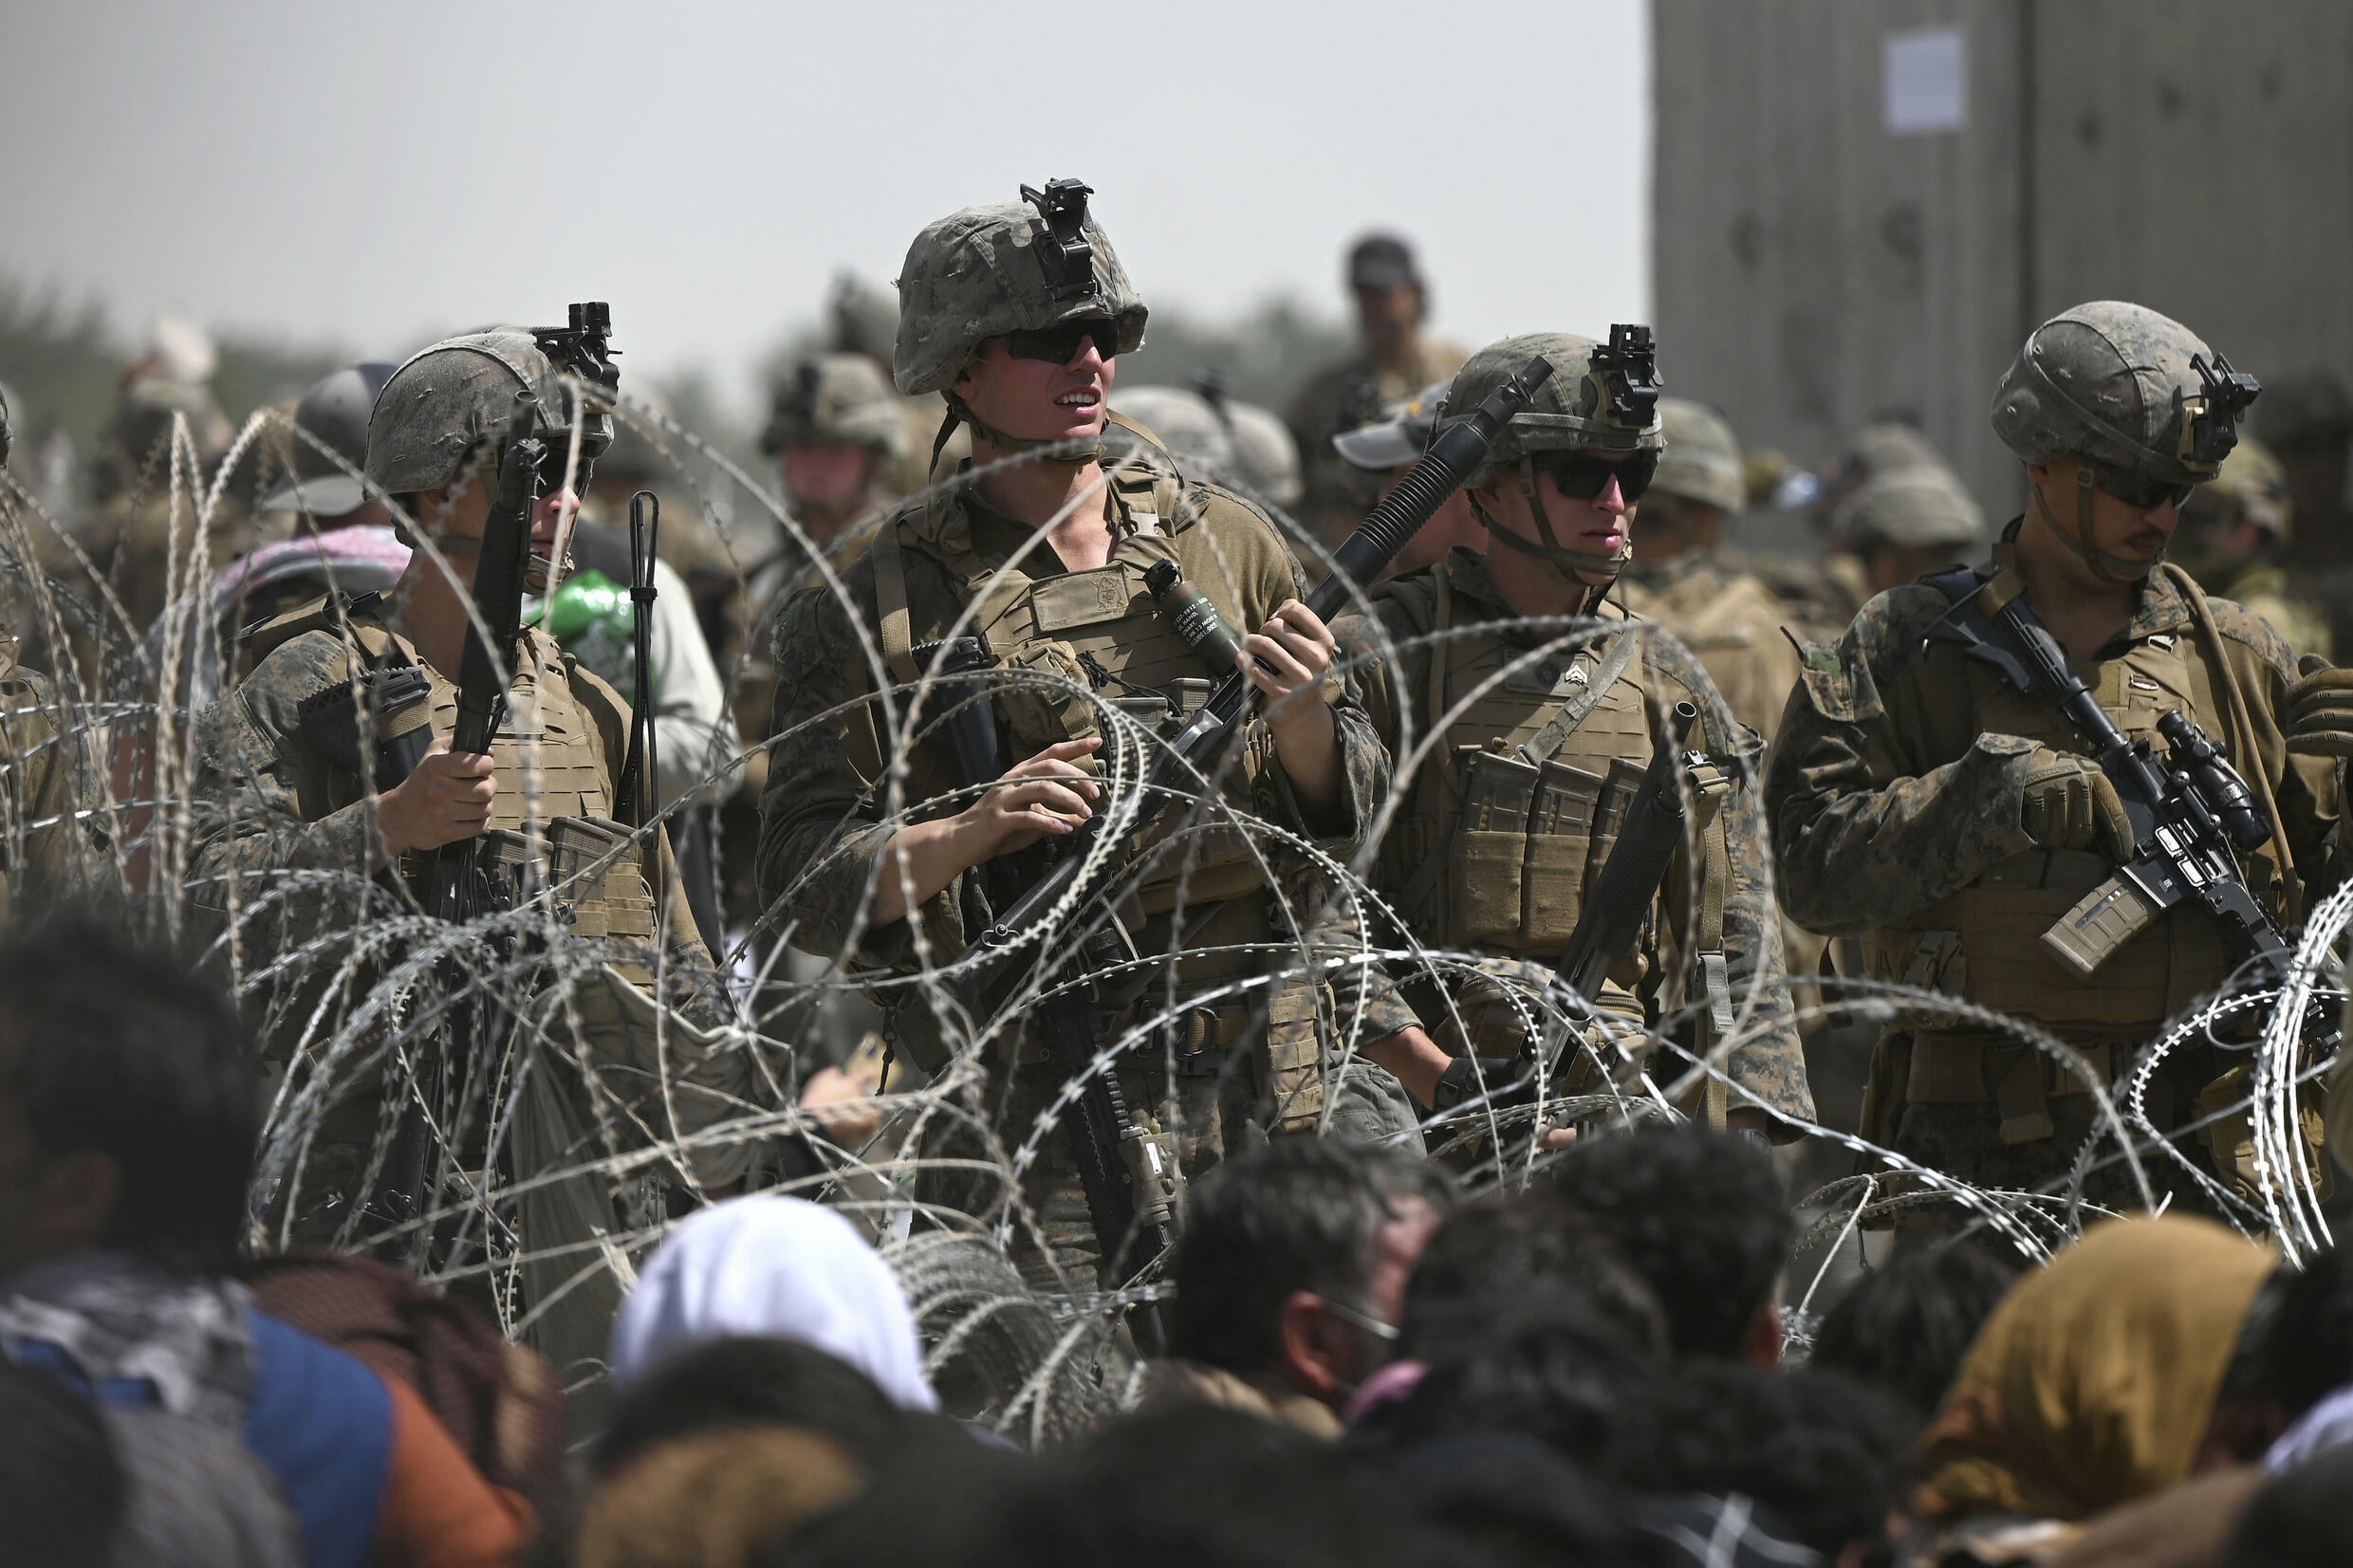 US soldiers stand guard behind barbed wire as Afghans sit on a roadside near the military part of the airport in Kabul on August 20, 2021, hoping to flee from the country